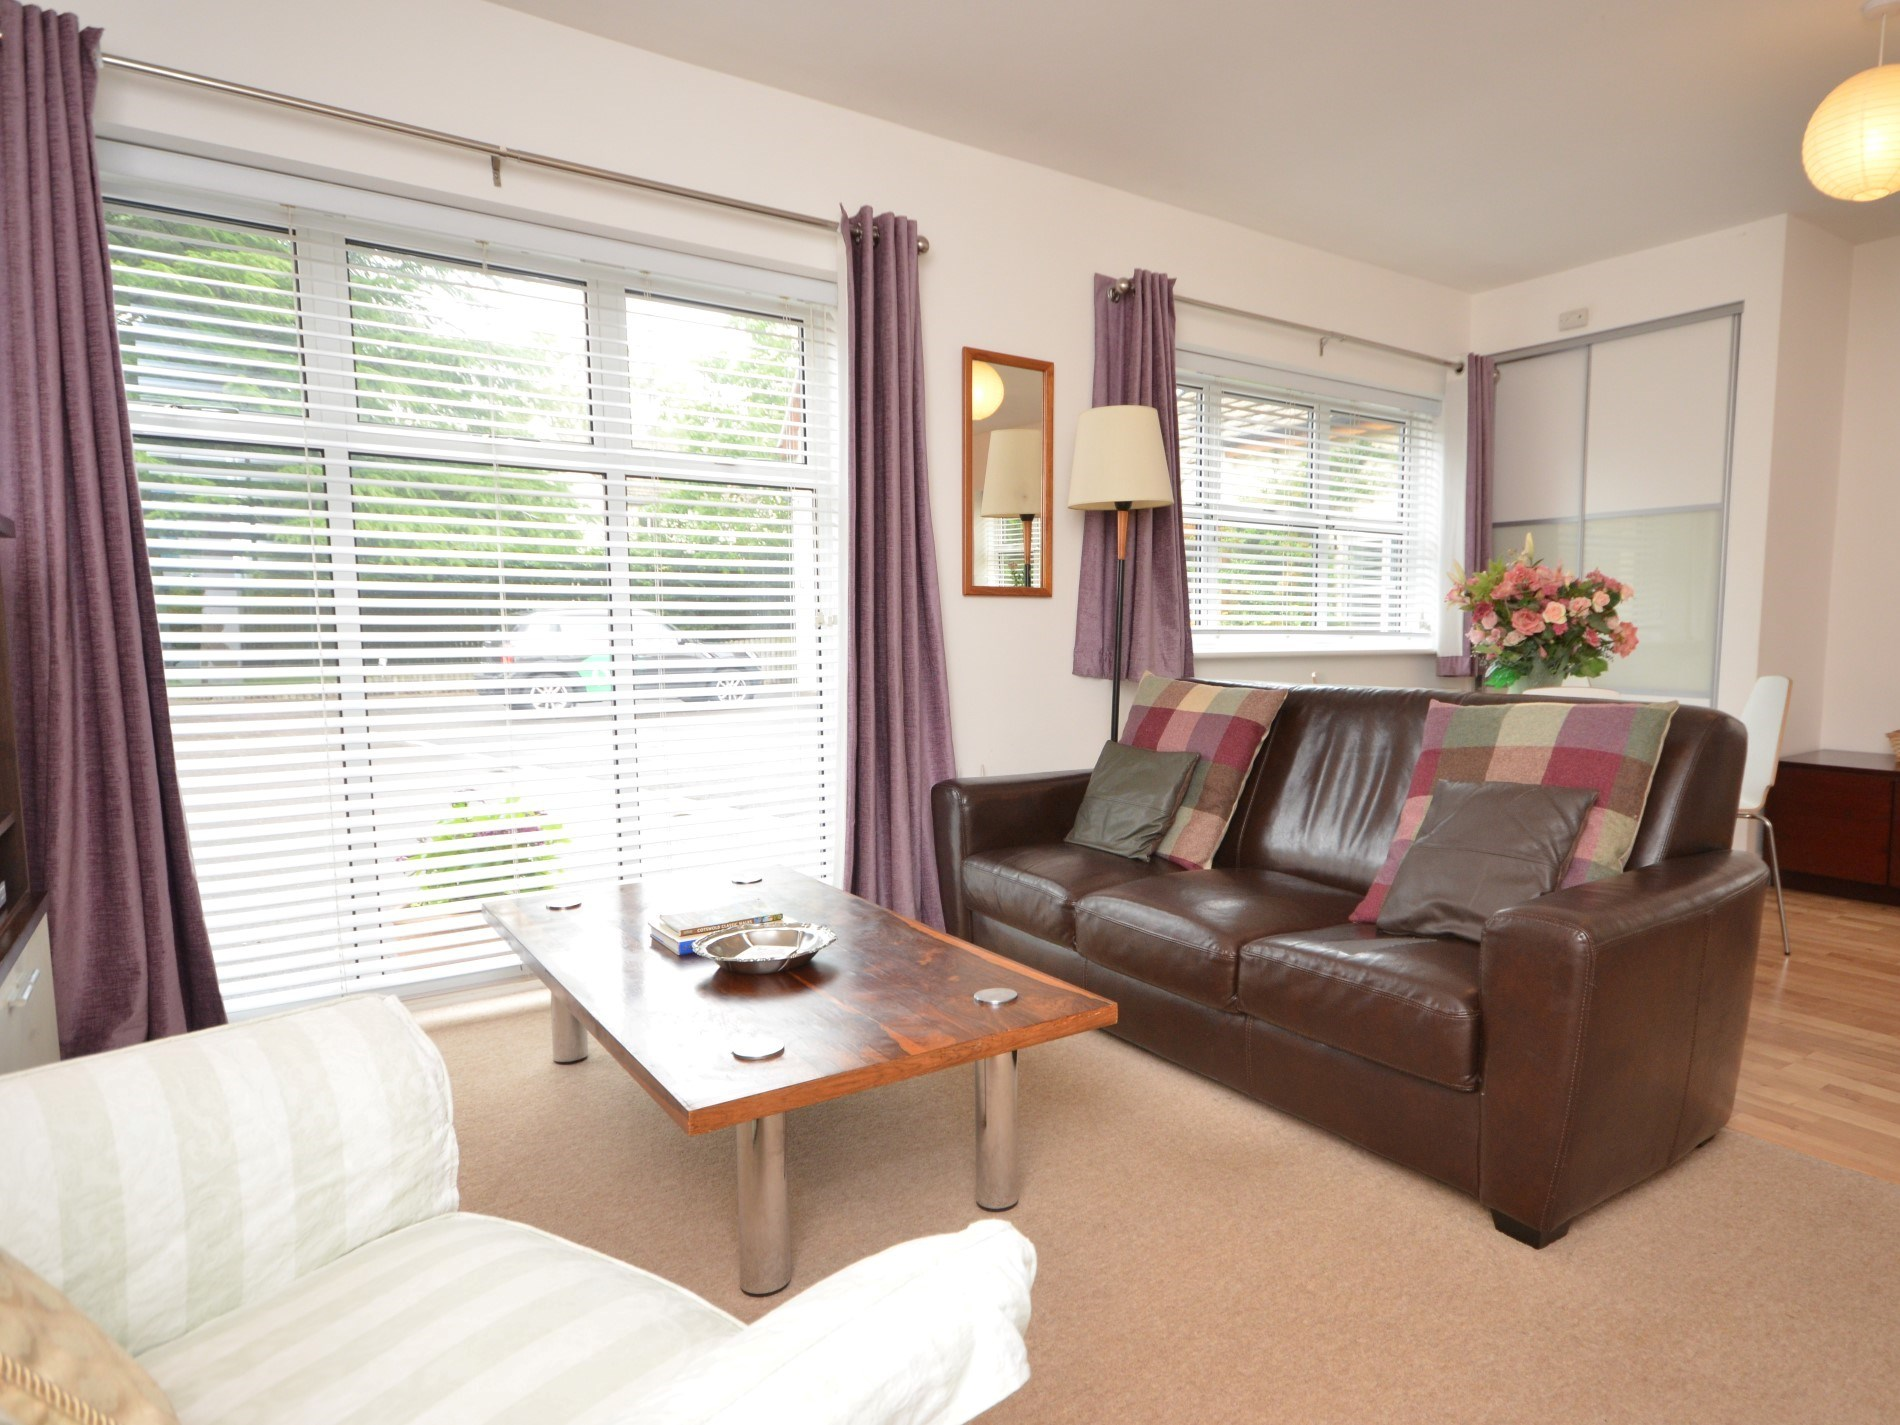 Relax and enjoy the simple but stylish decor of this detached annexe